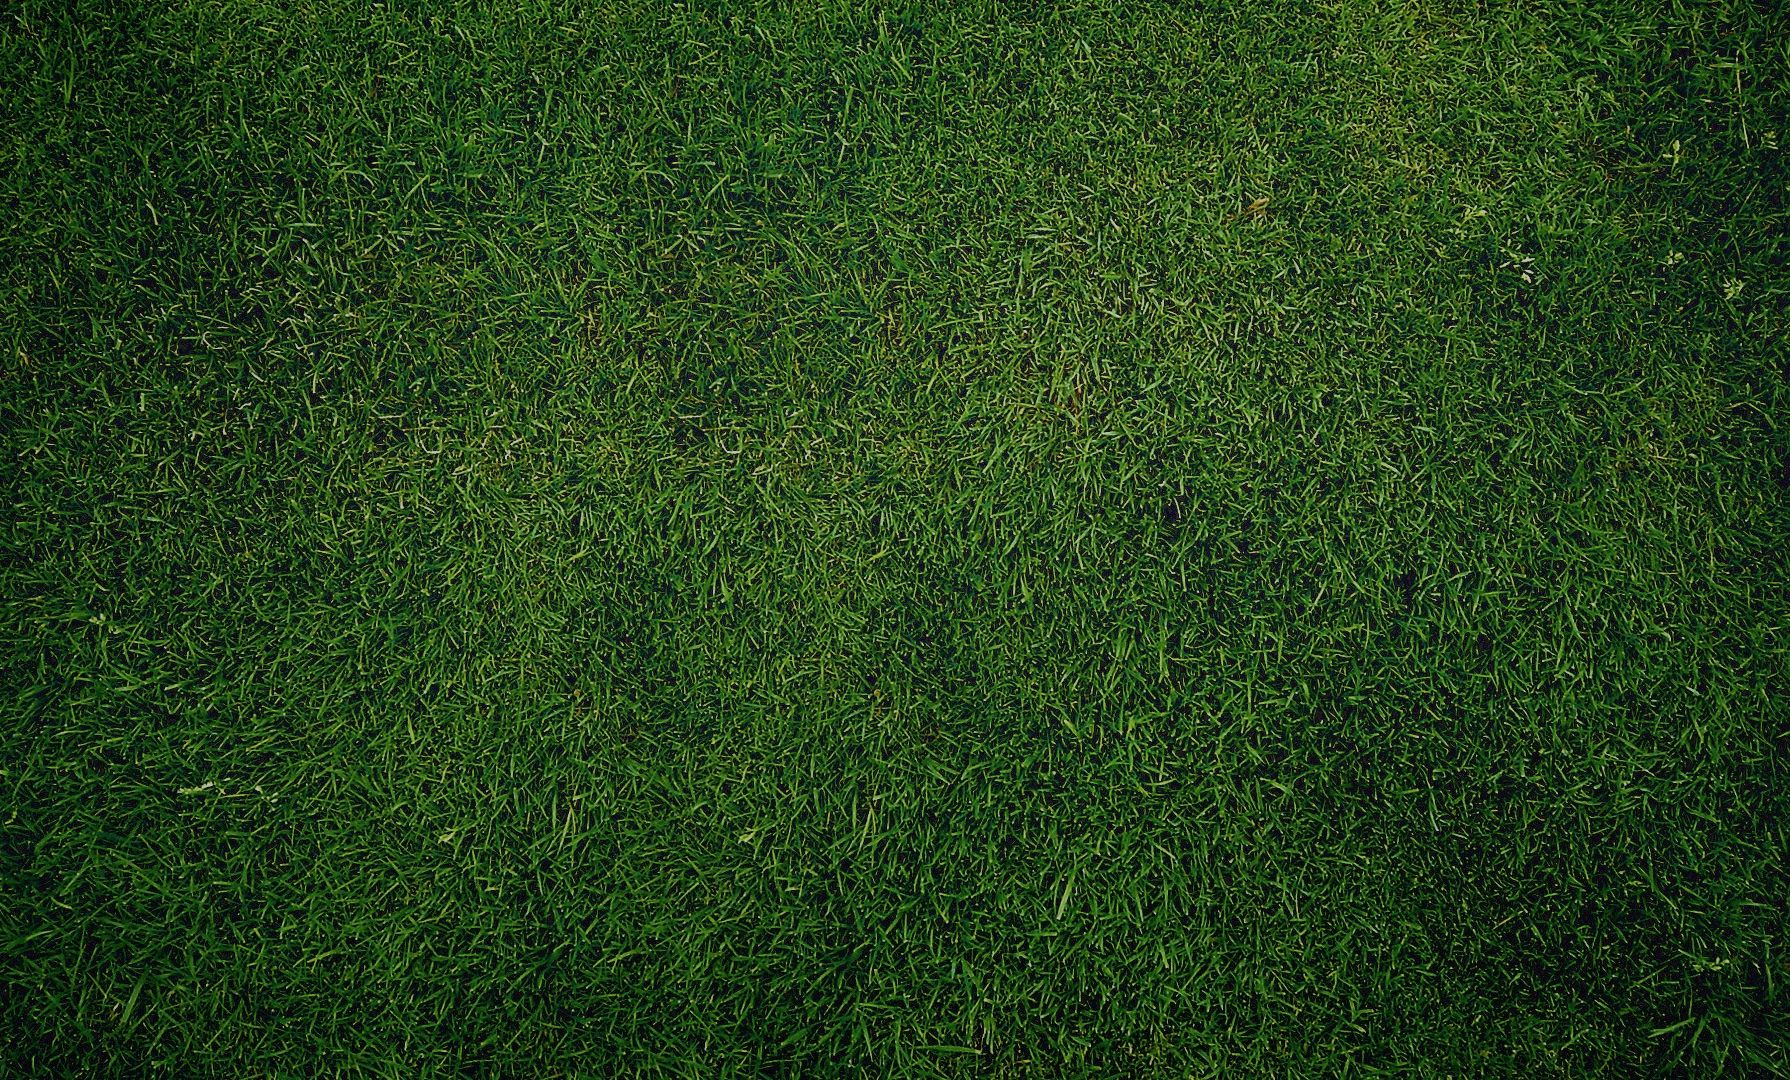 Image - Dark green grass texture-other.jpg | Football Wiki ...